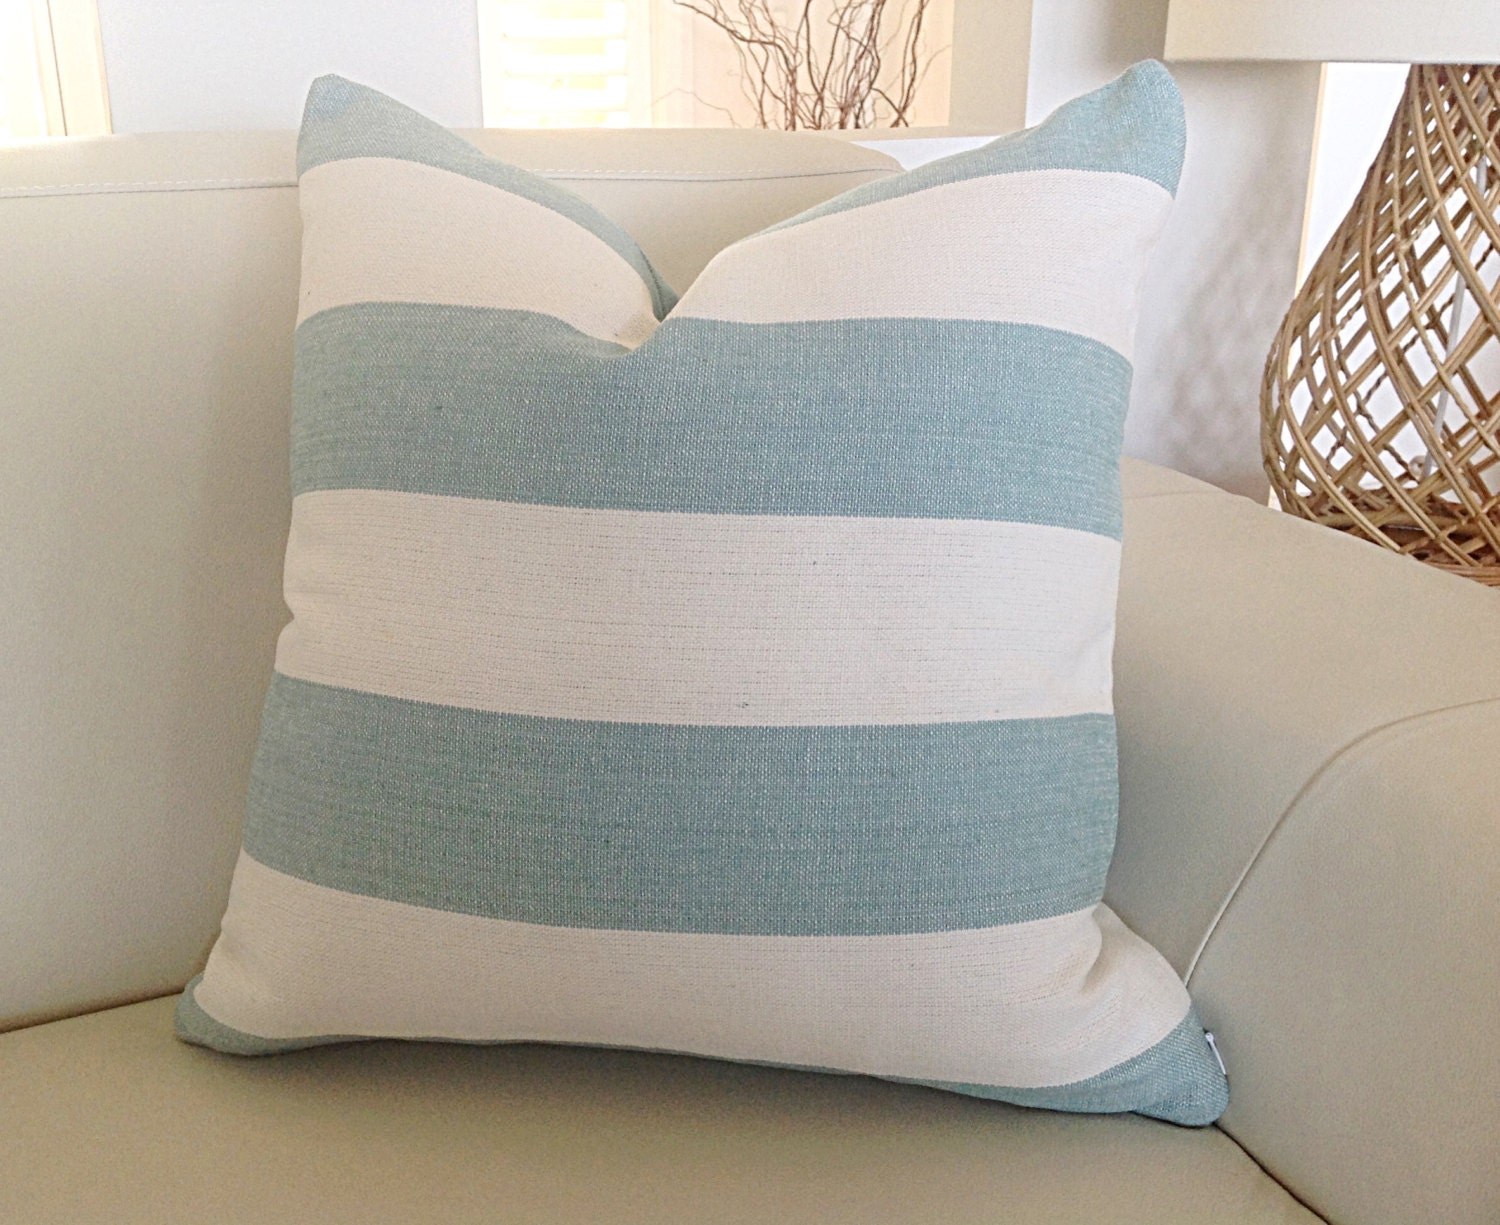 living pillows popsugar smart pillow beach